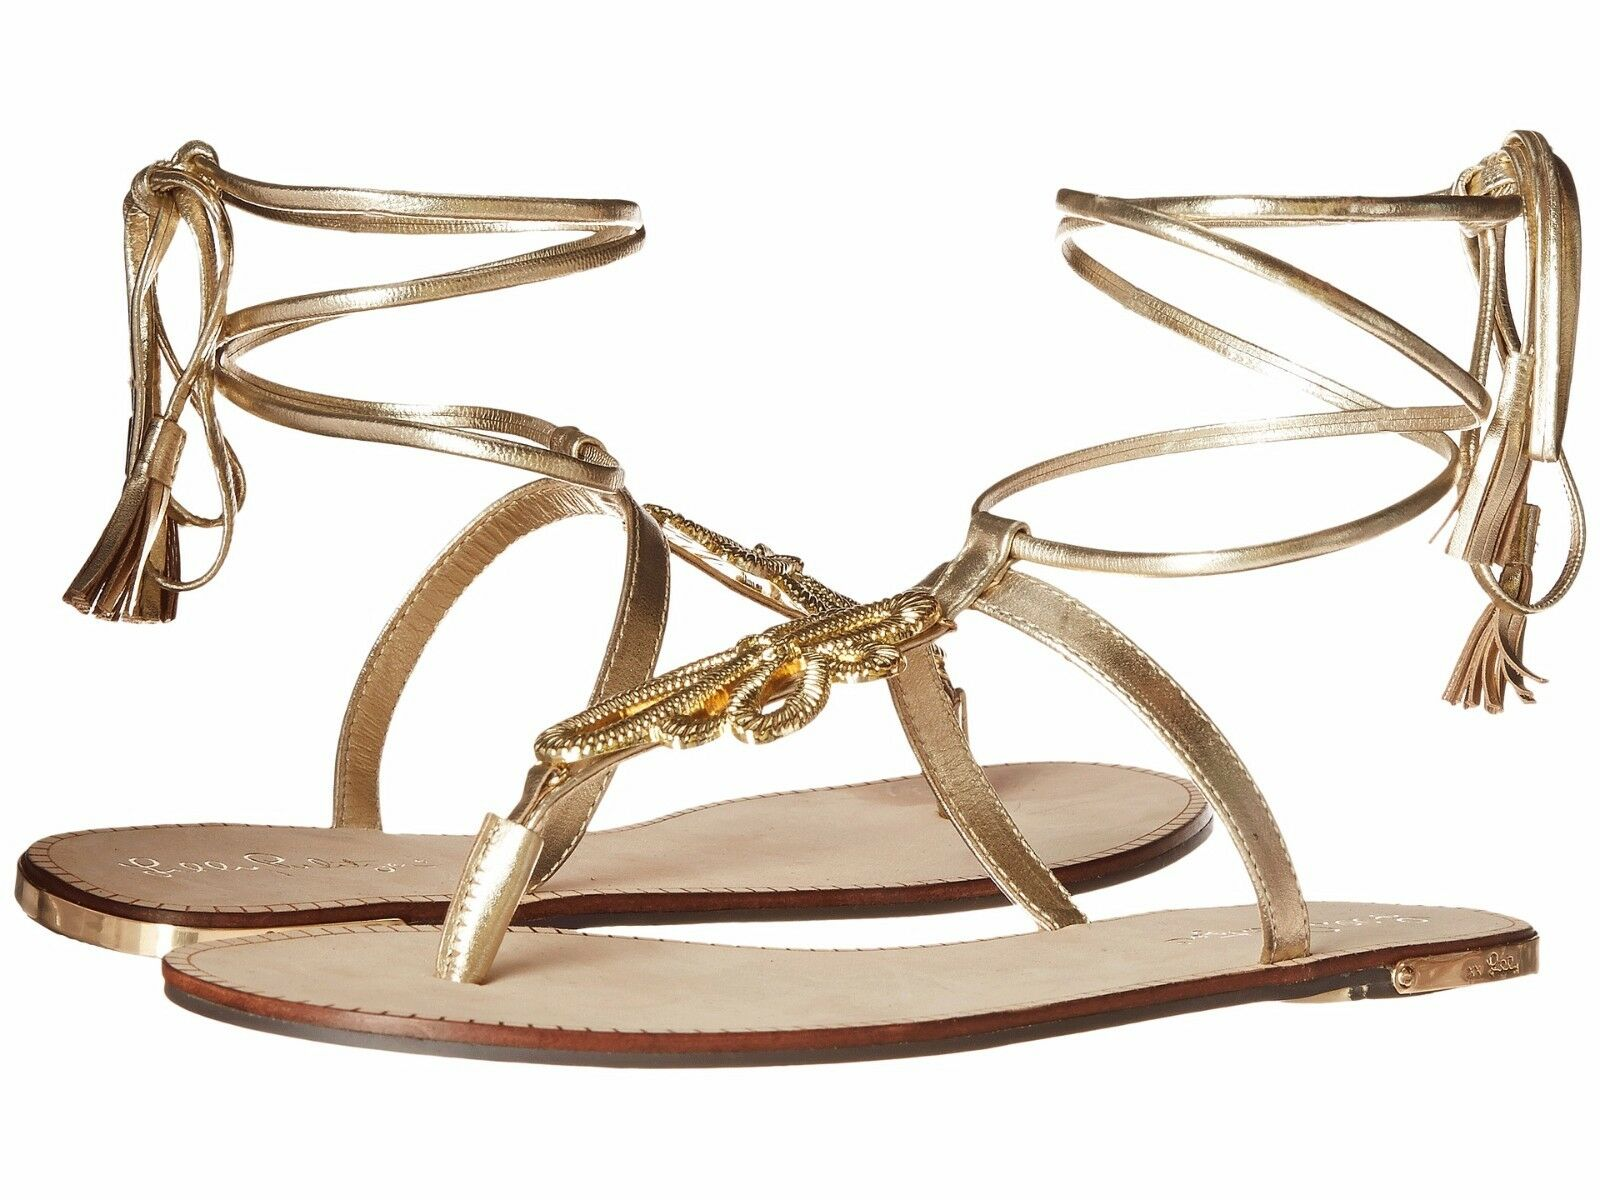 New Lilly Pulitzer Pier Strappy Gladiator Flat Sandals gold Leather 10